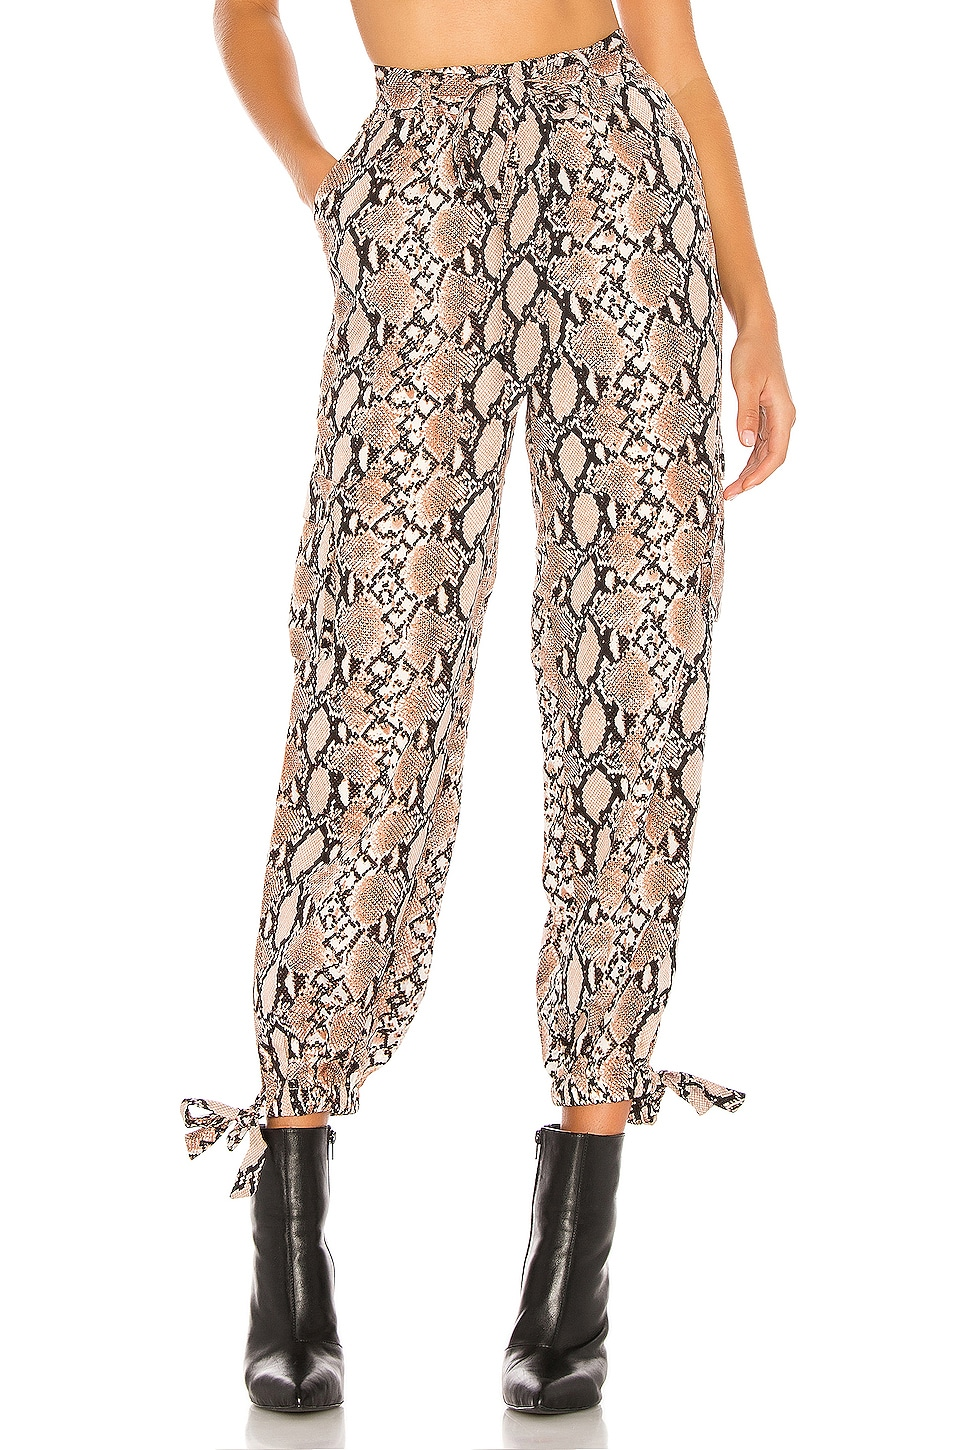 h:ours PANTALONES SIMI